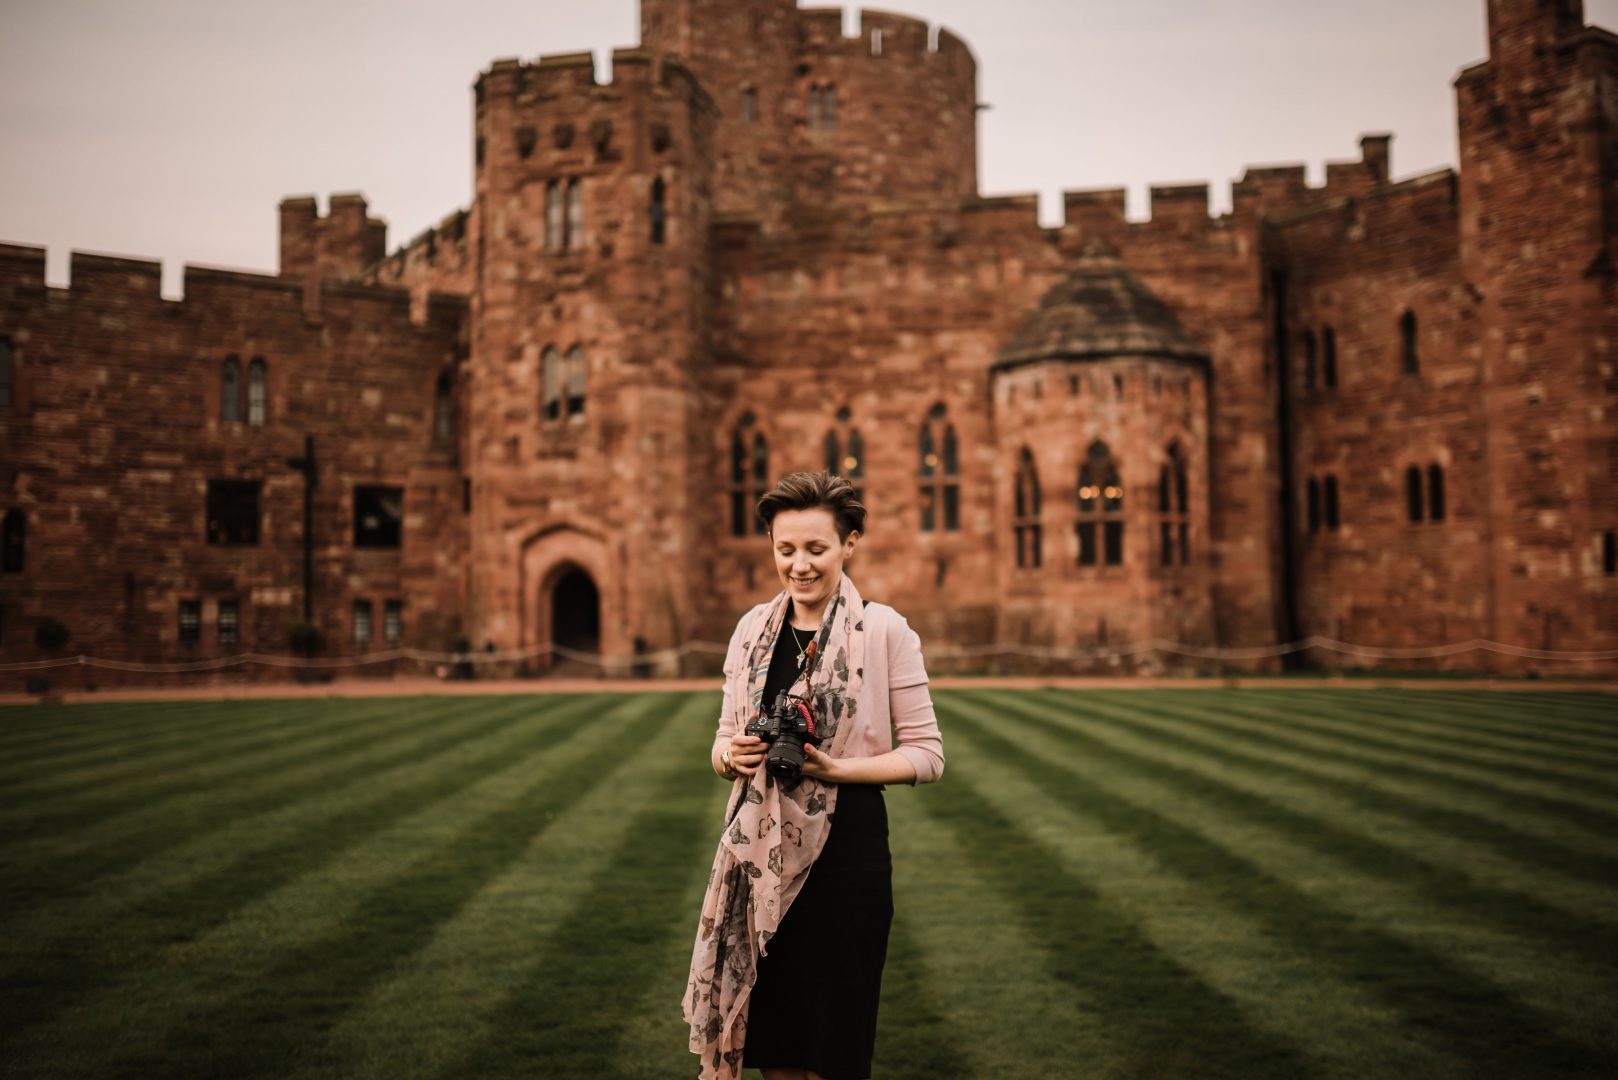 female wedding videographer holding a camera outside Peckforton Castle